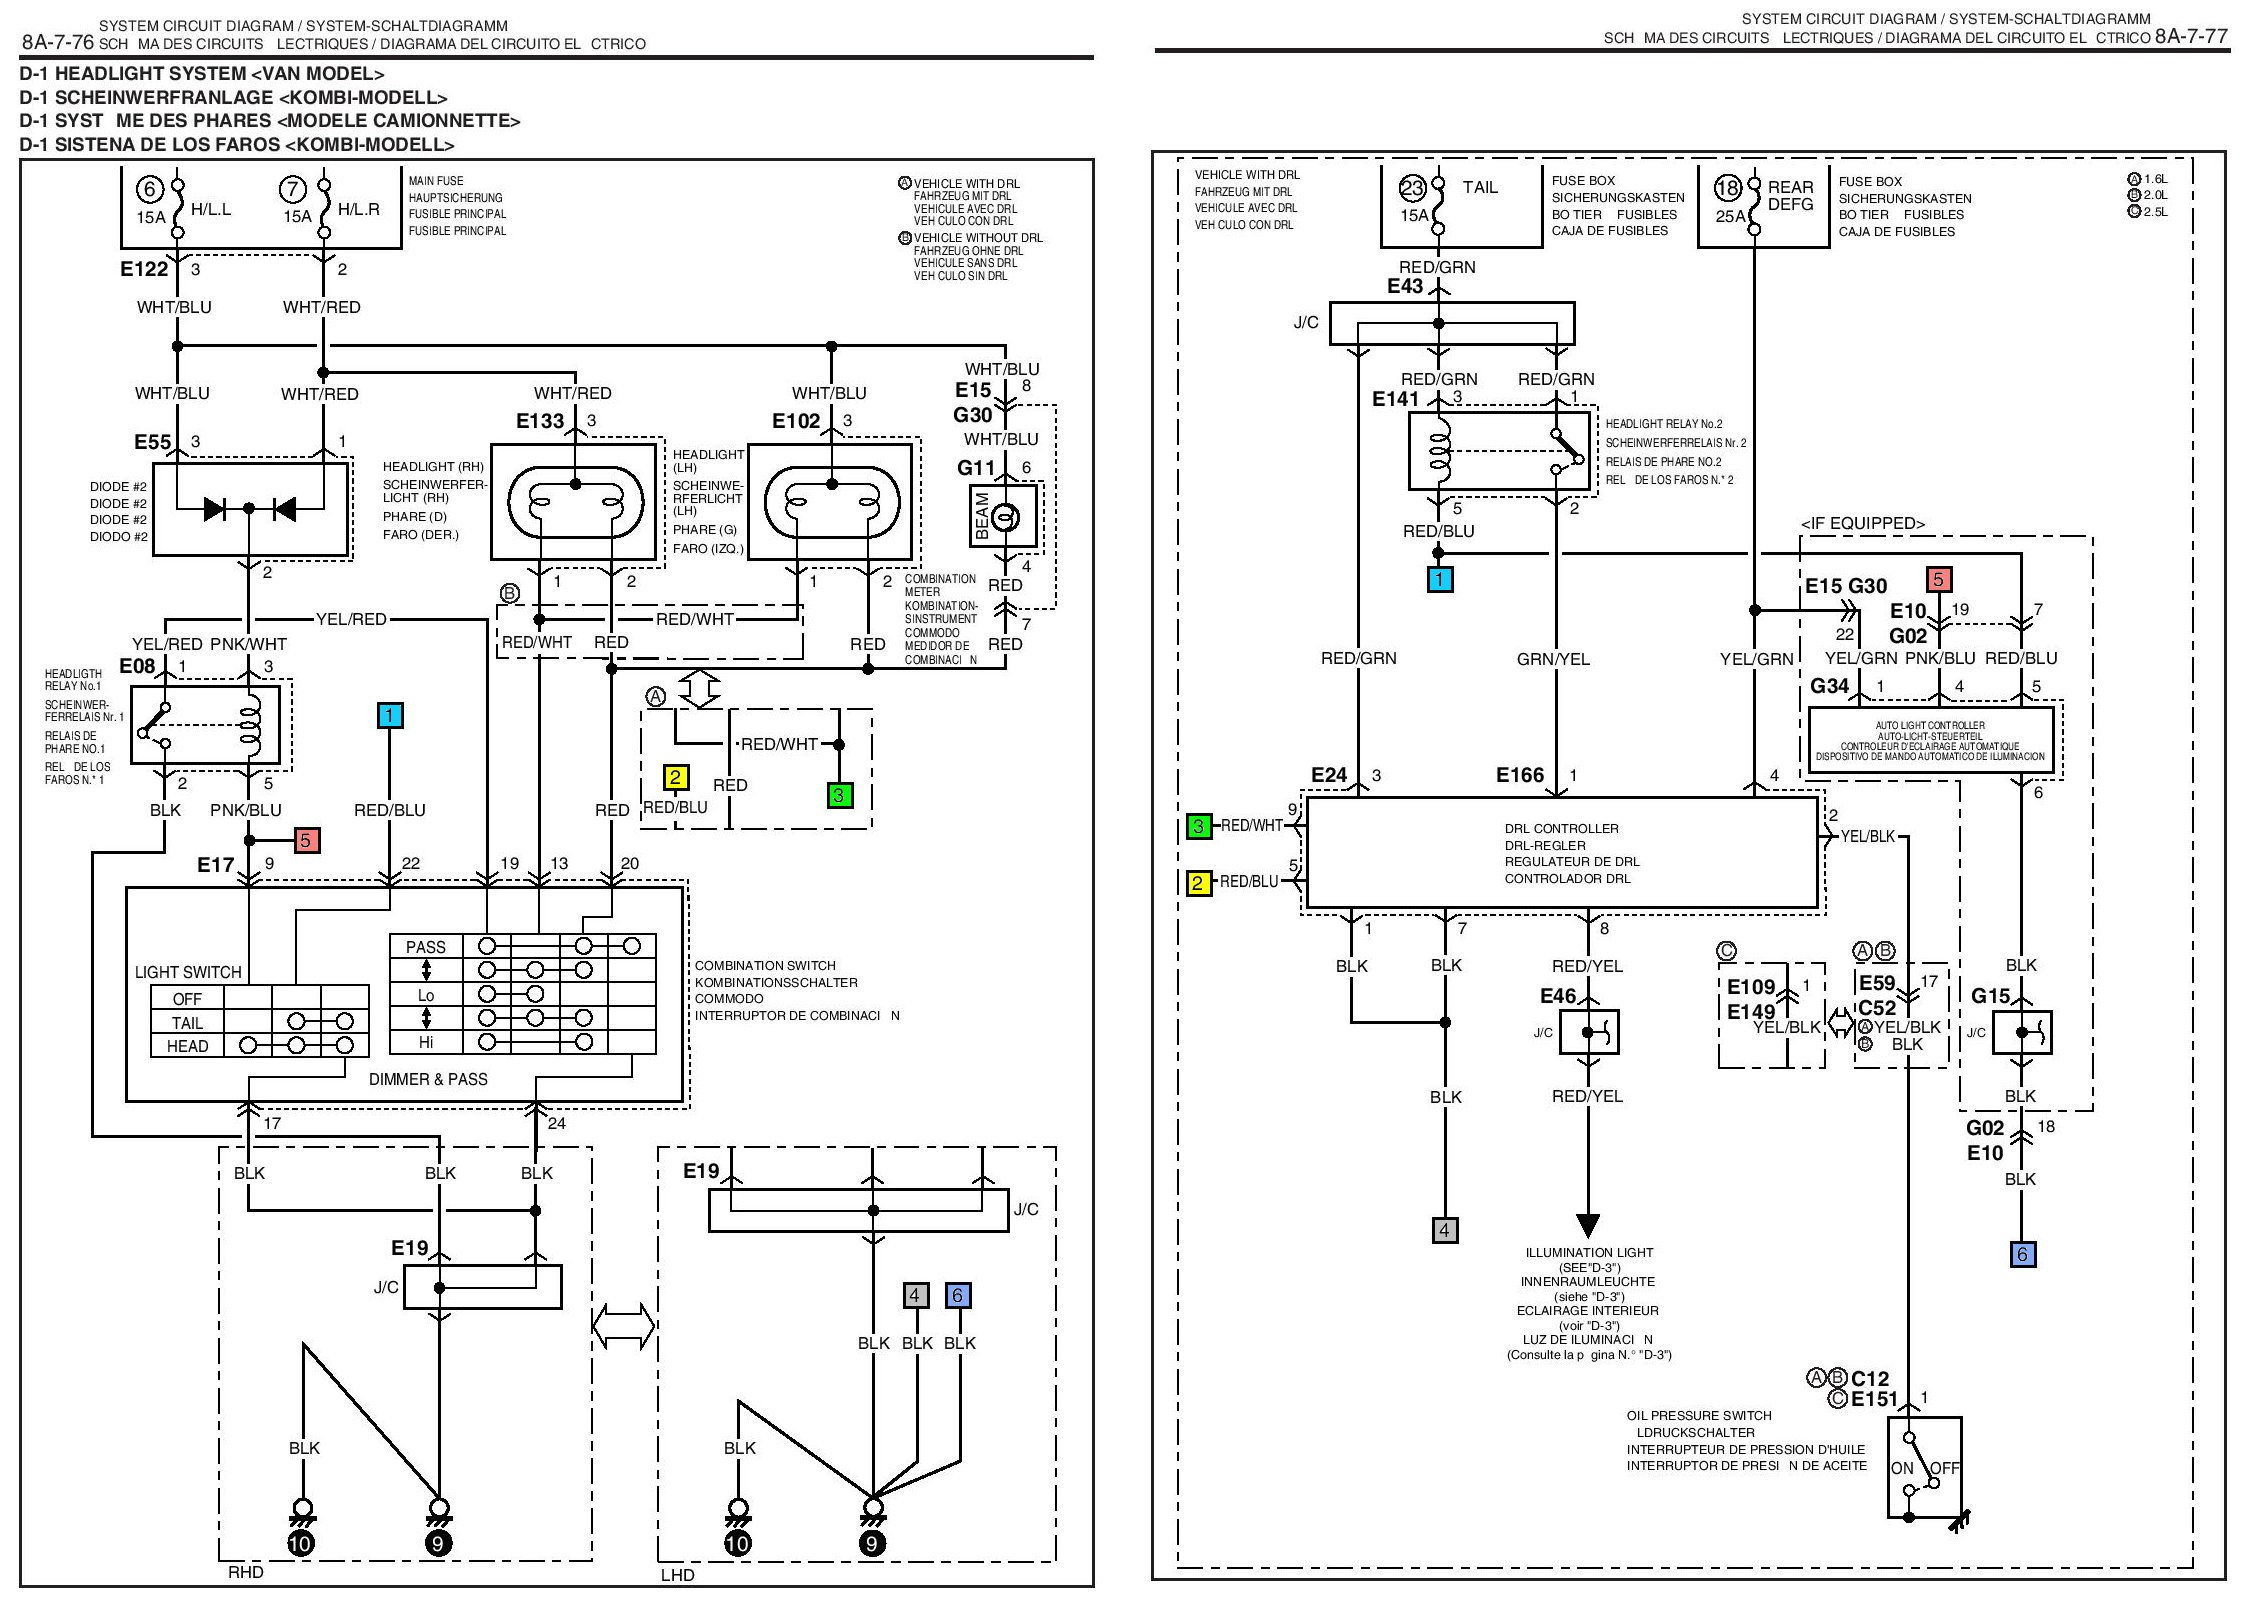 2008 suzuki xl7 radio wiring diagram